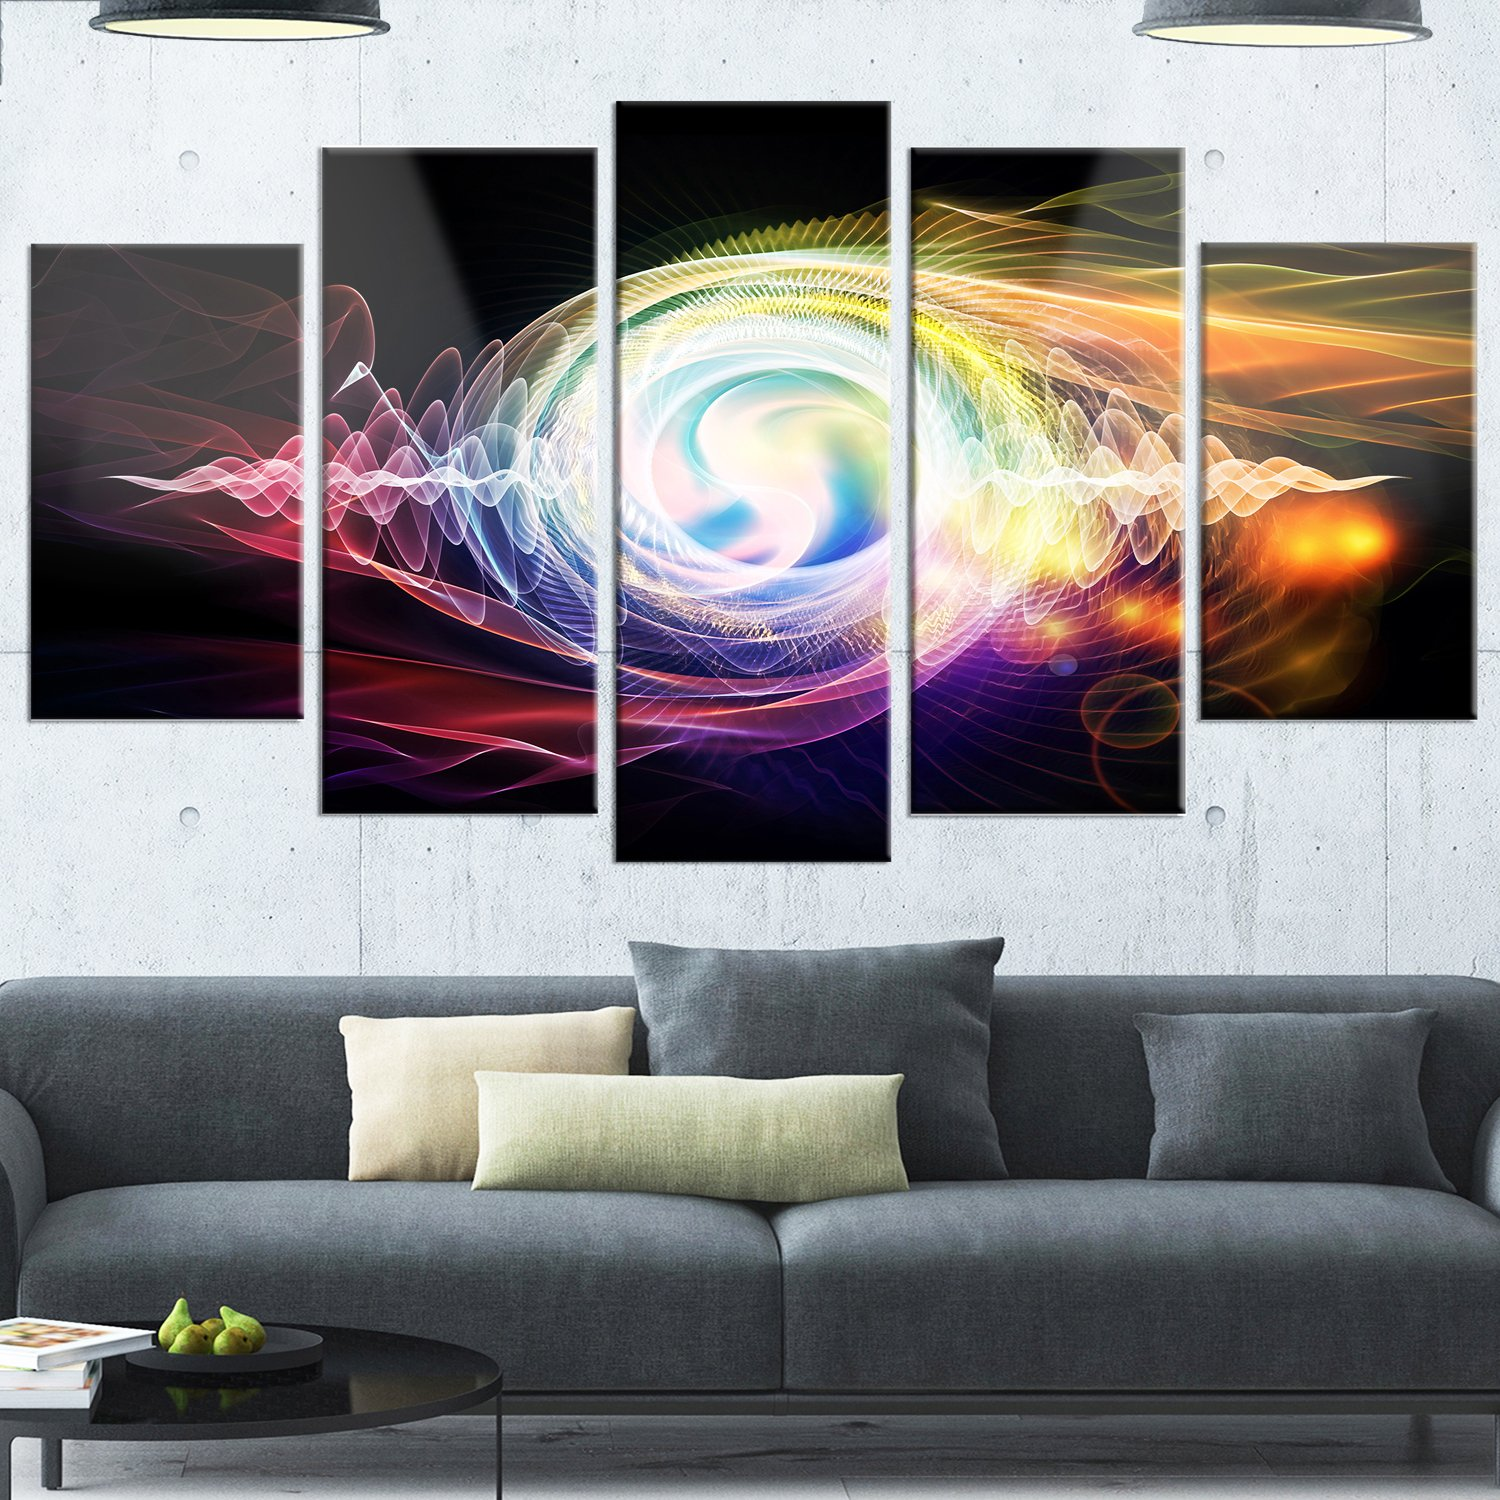 Large Abstract Glossy Metal Wall Art,Black,60x32 Designart MT14164-373 Bright Wave Particle in Air on Black